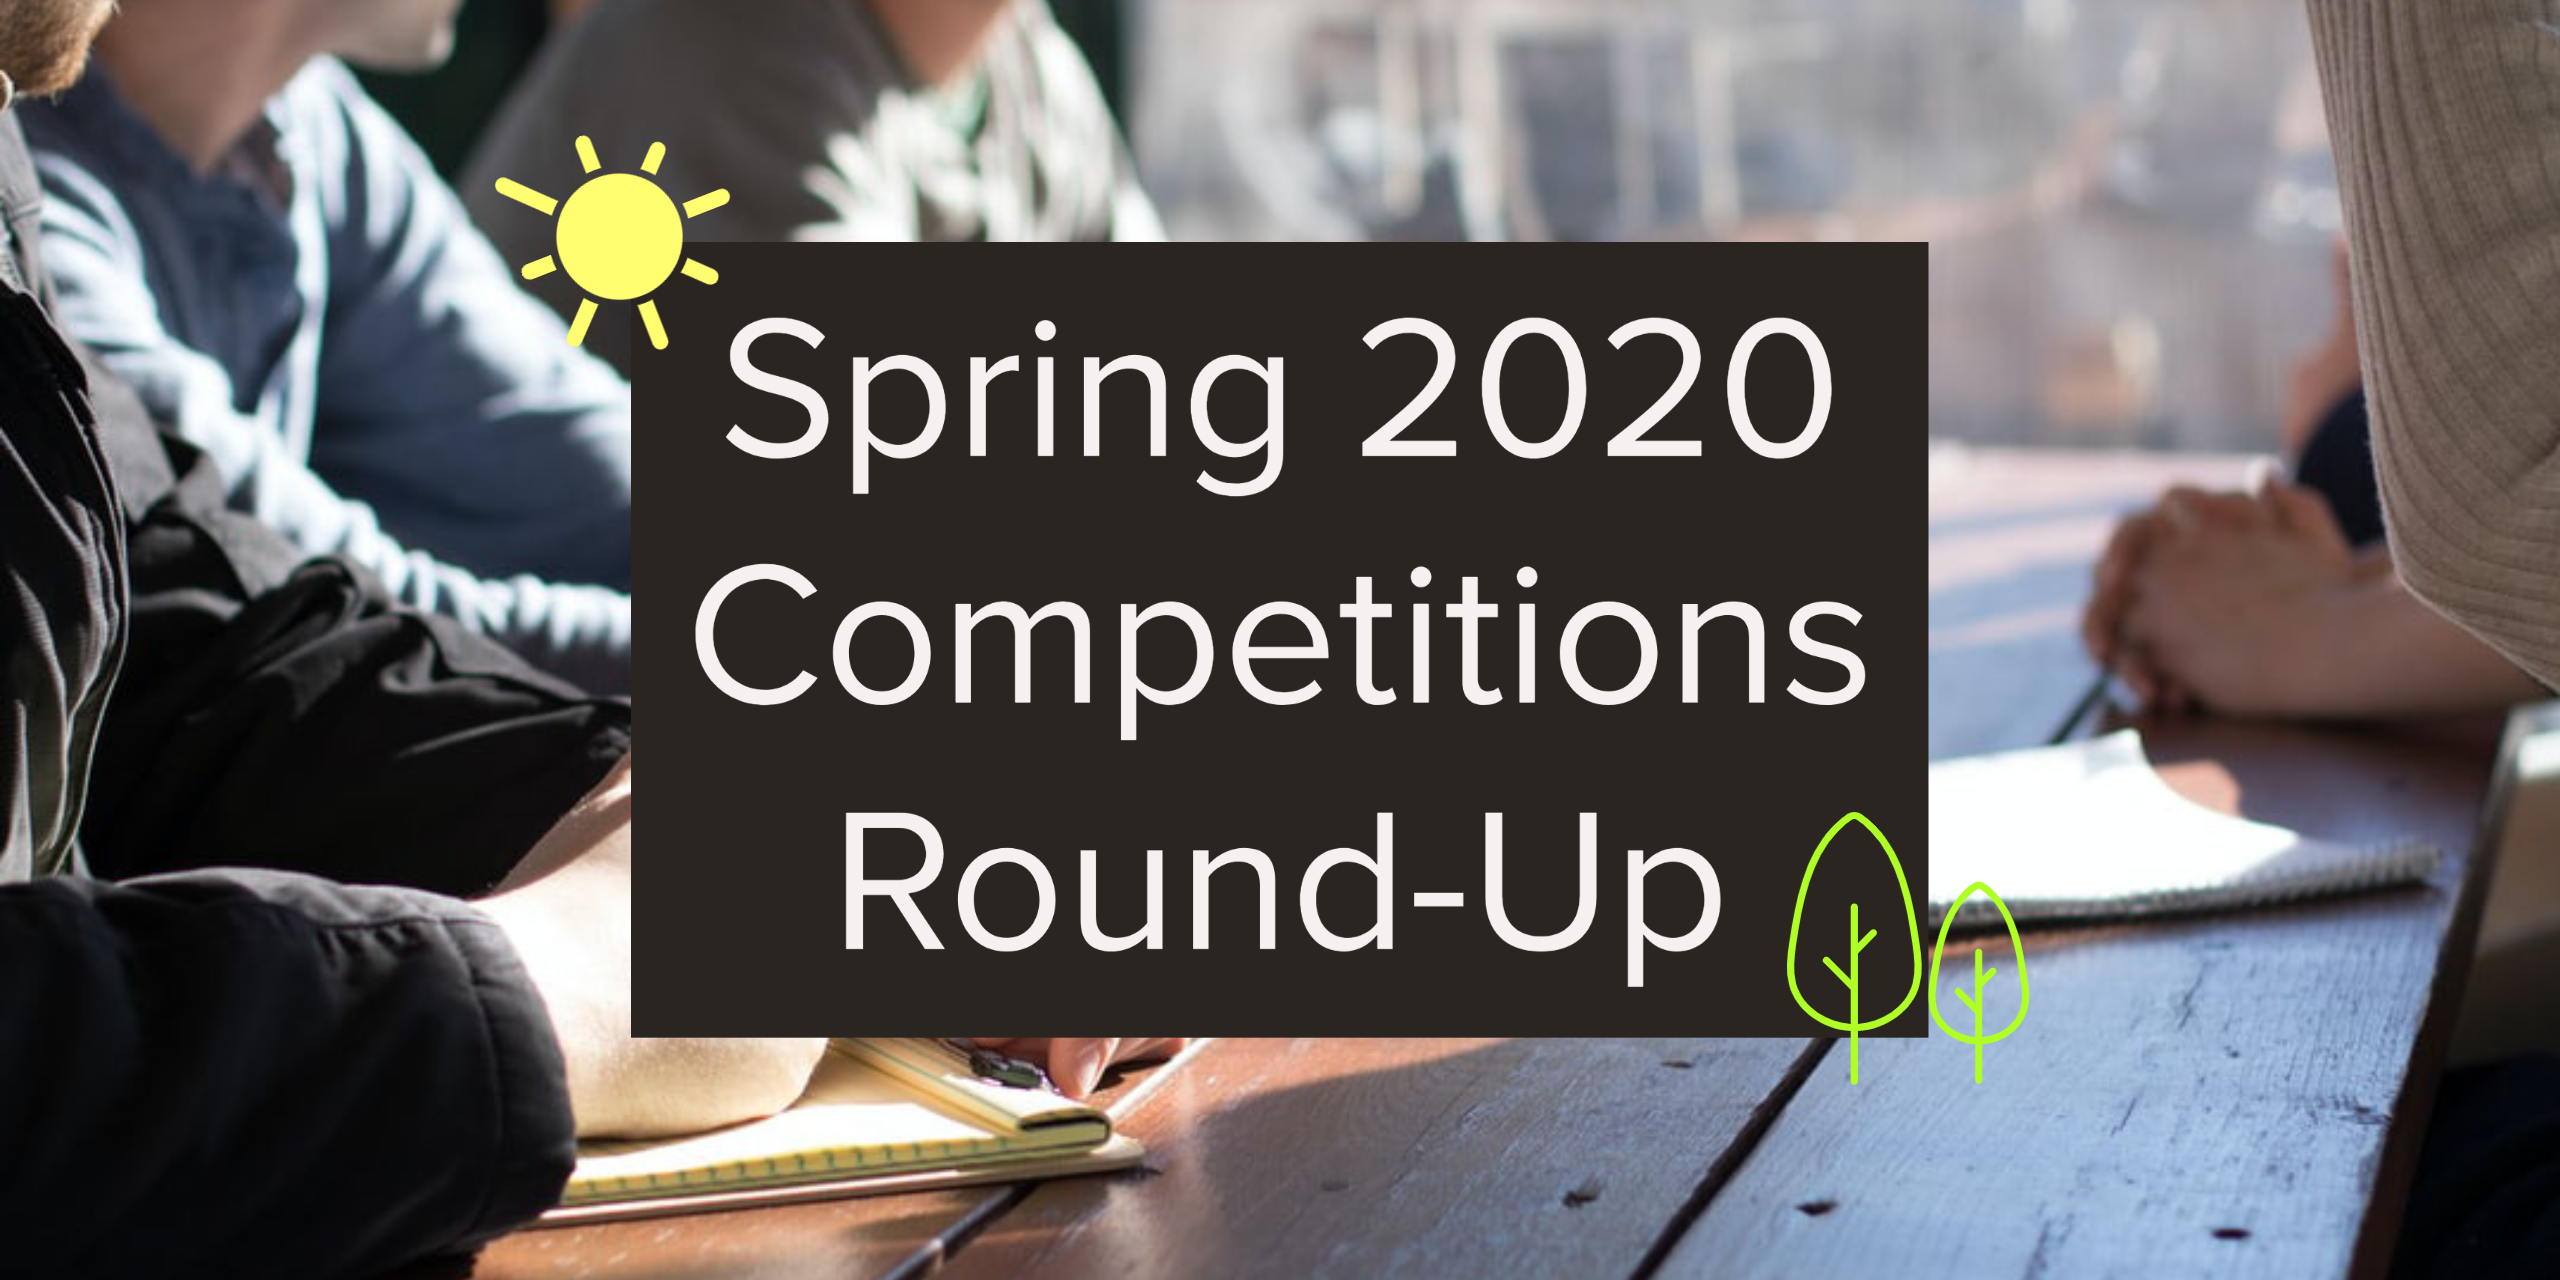 Conrad School Competitions Round-Up - Spring 2020